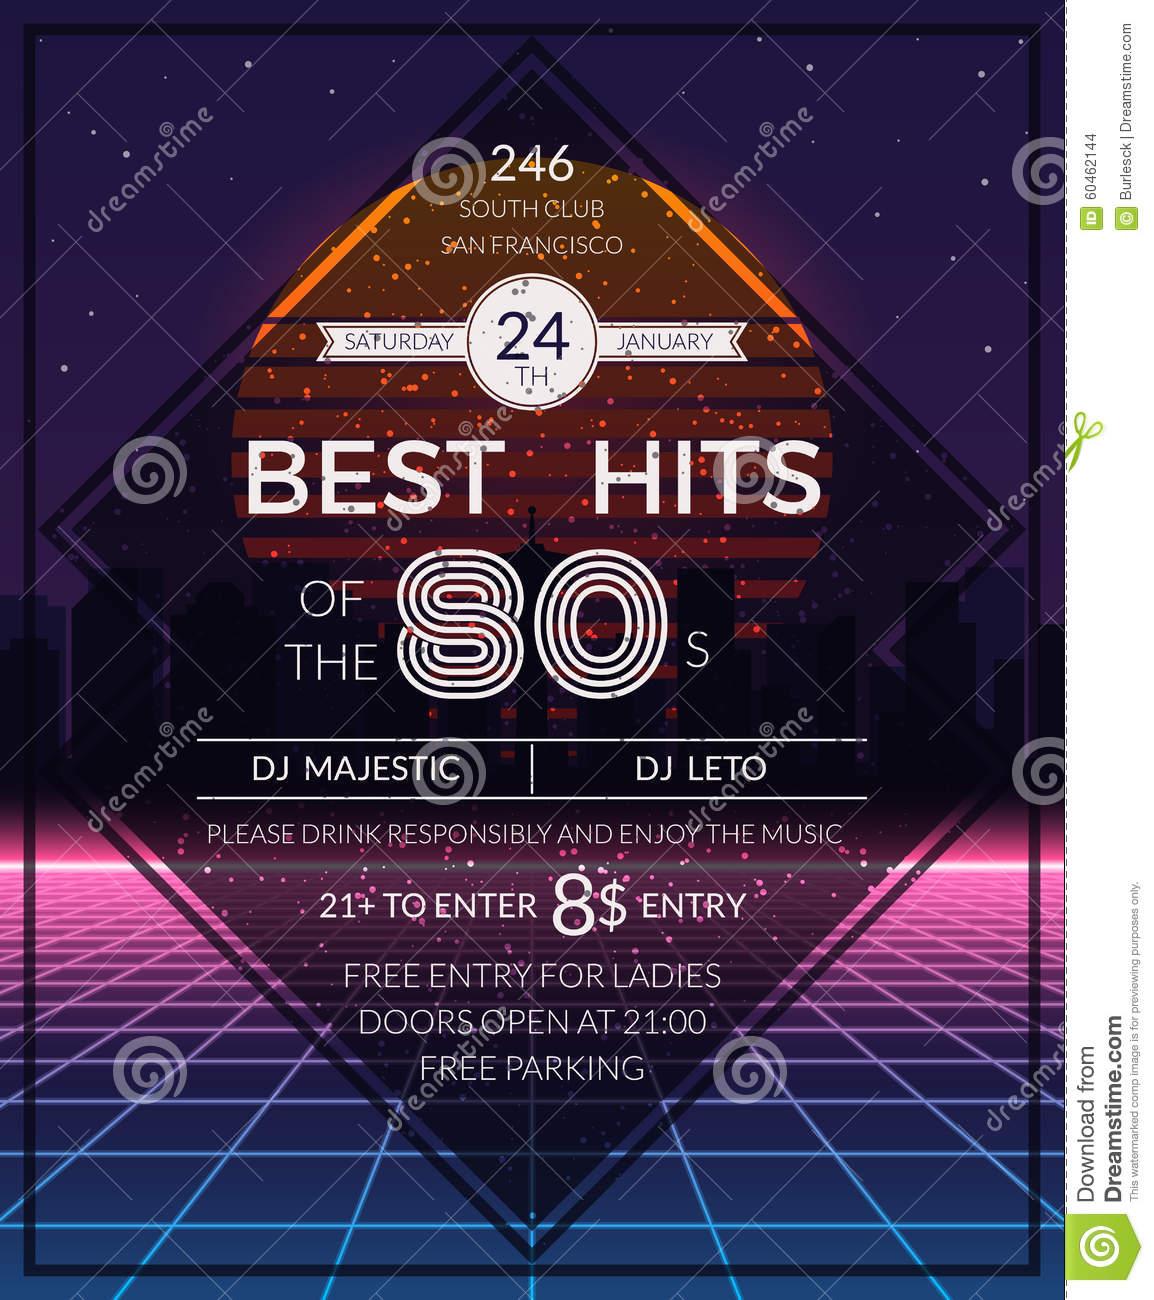 80s poster design - Retro 80s Hits Party Poster Stock Vector